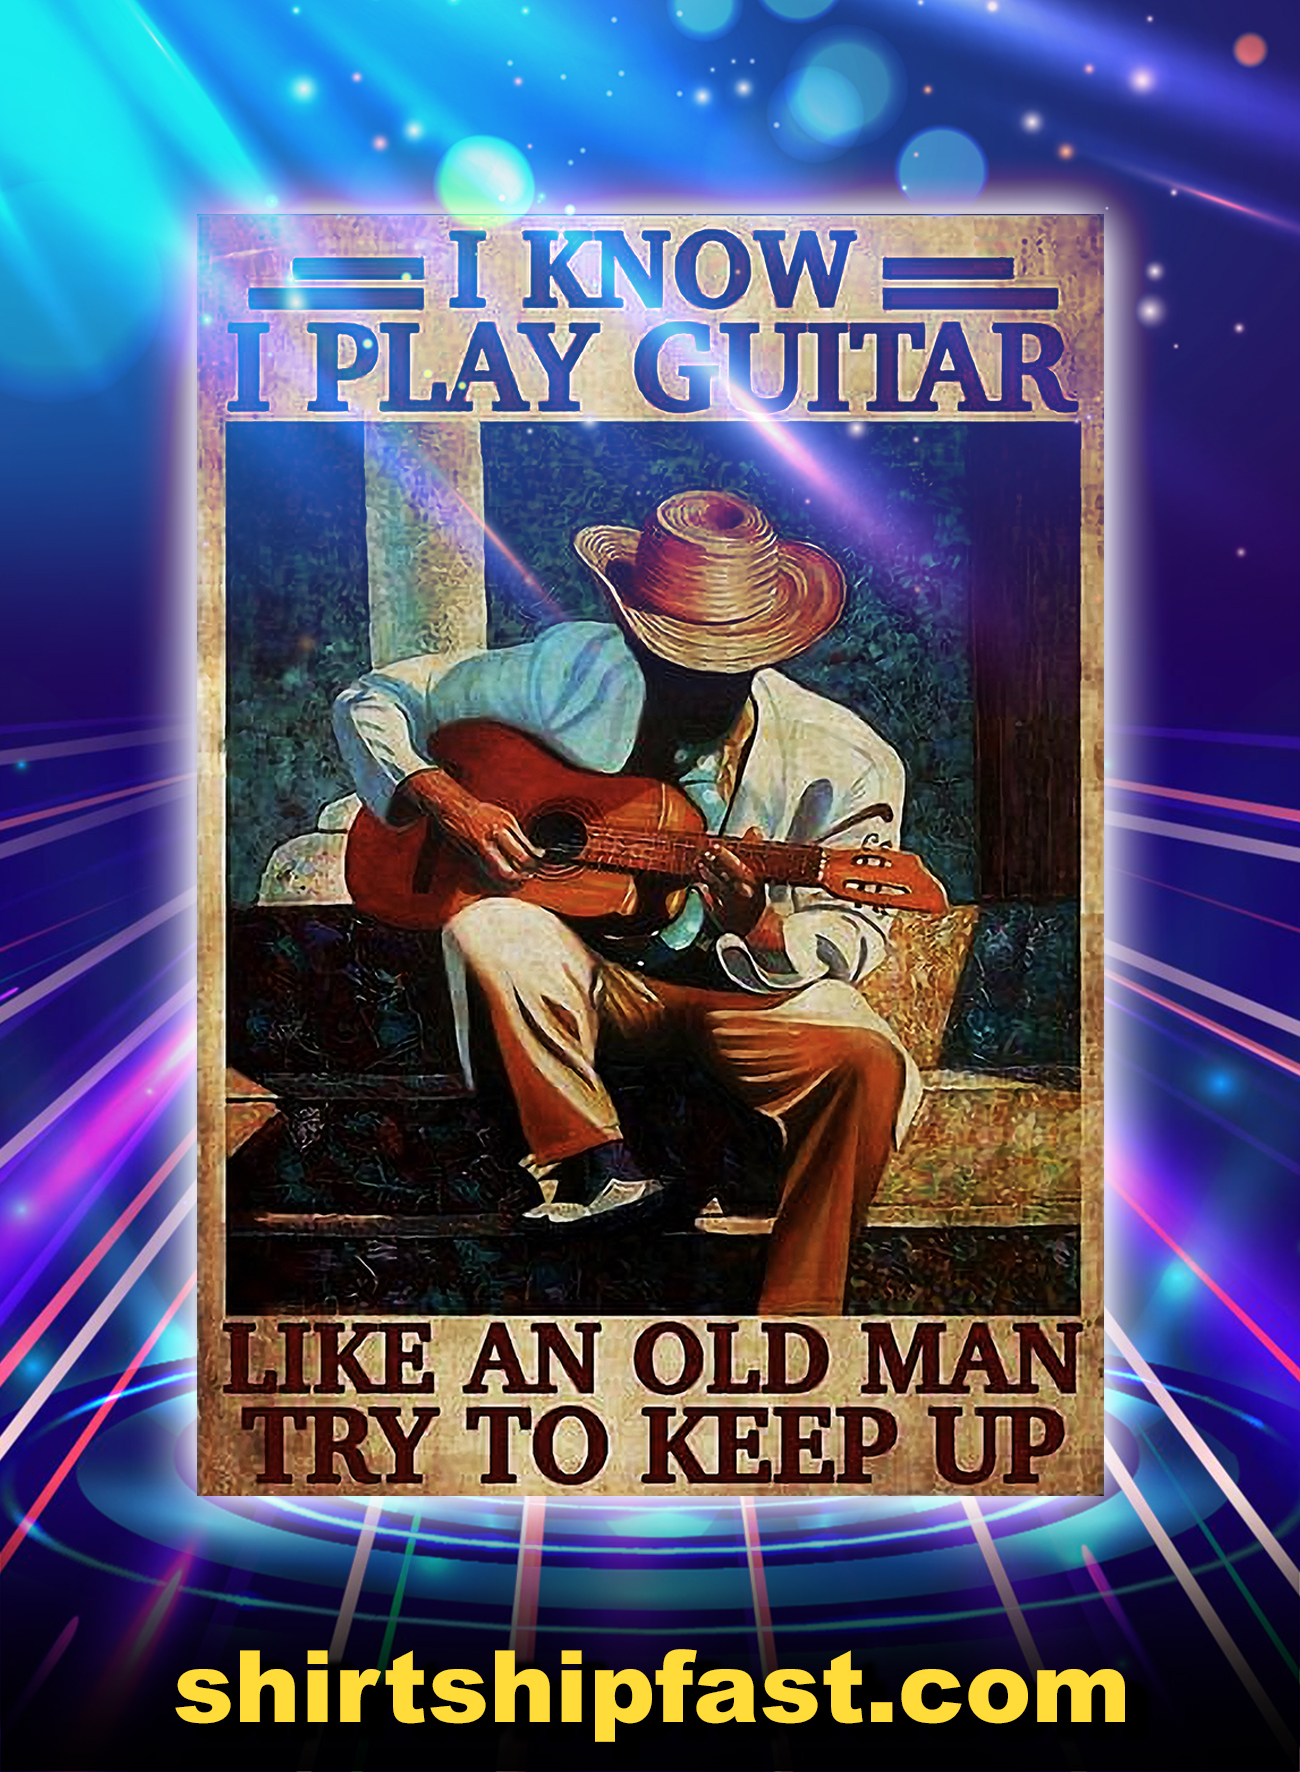 I know i play guitar like an old man try to keep up poster - A4